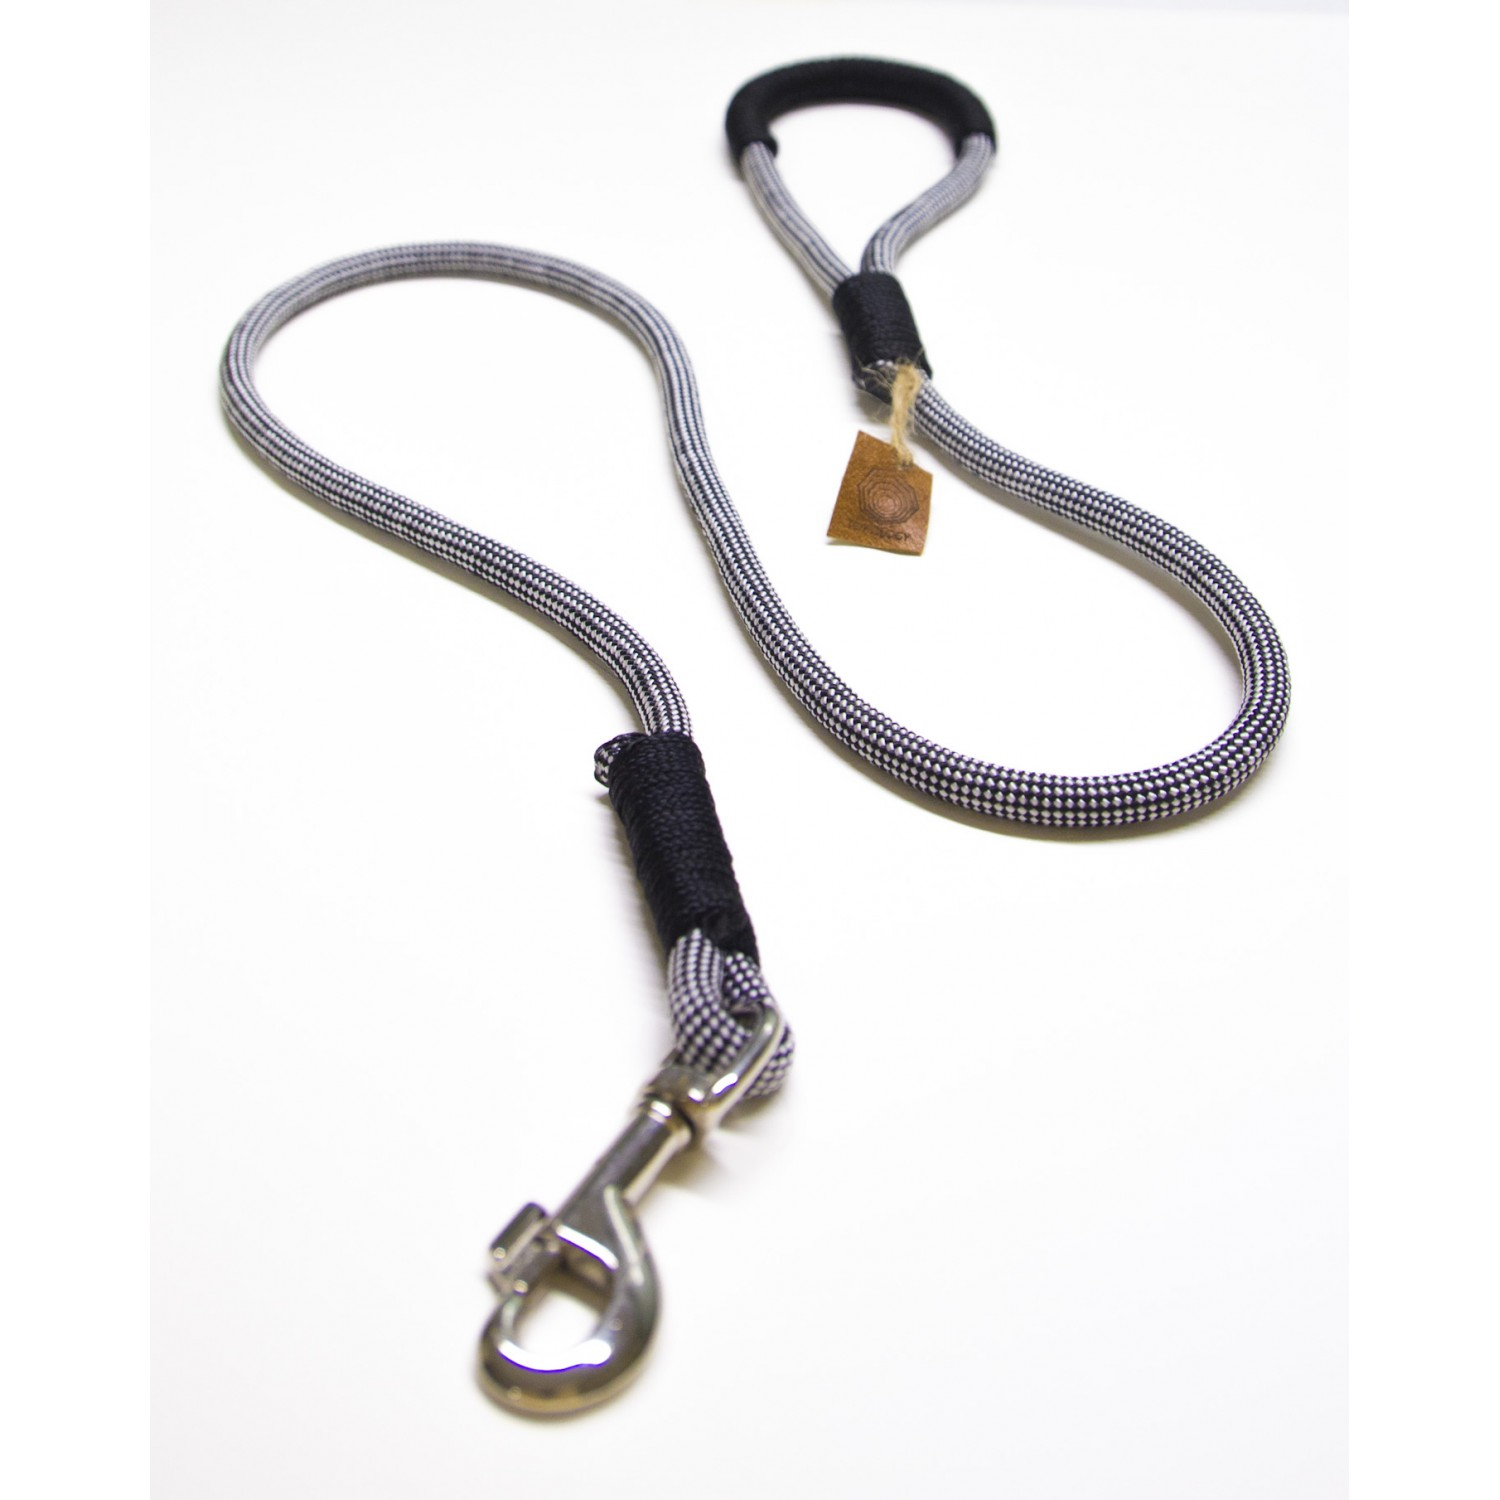 Checkers Black & White Rope Dog Leash